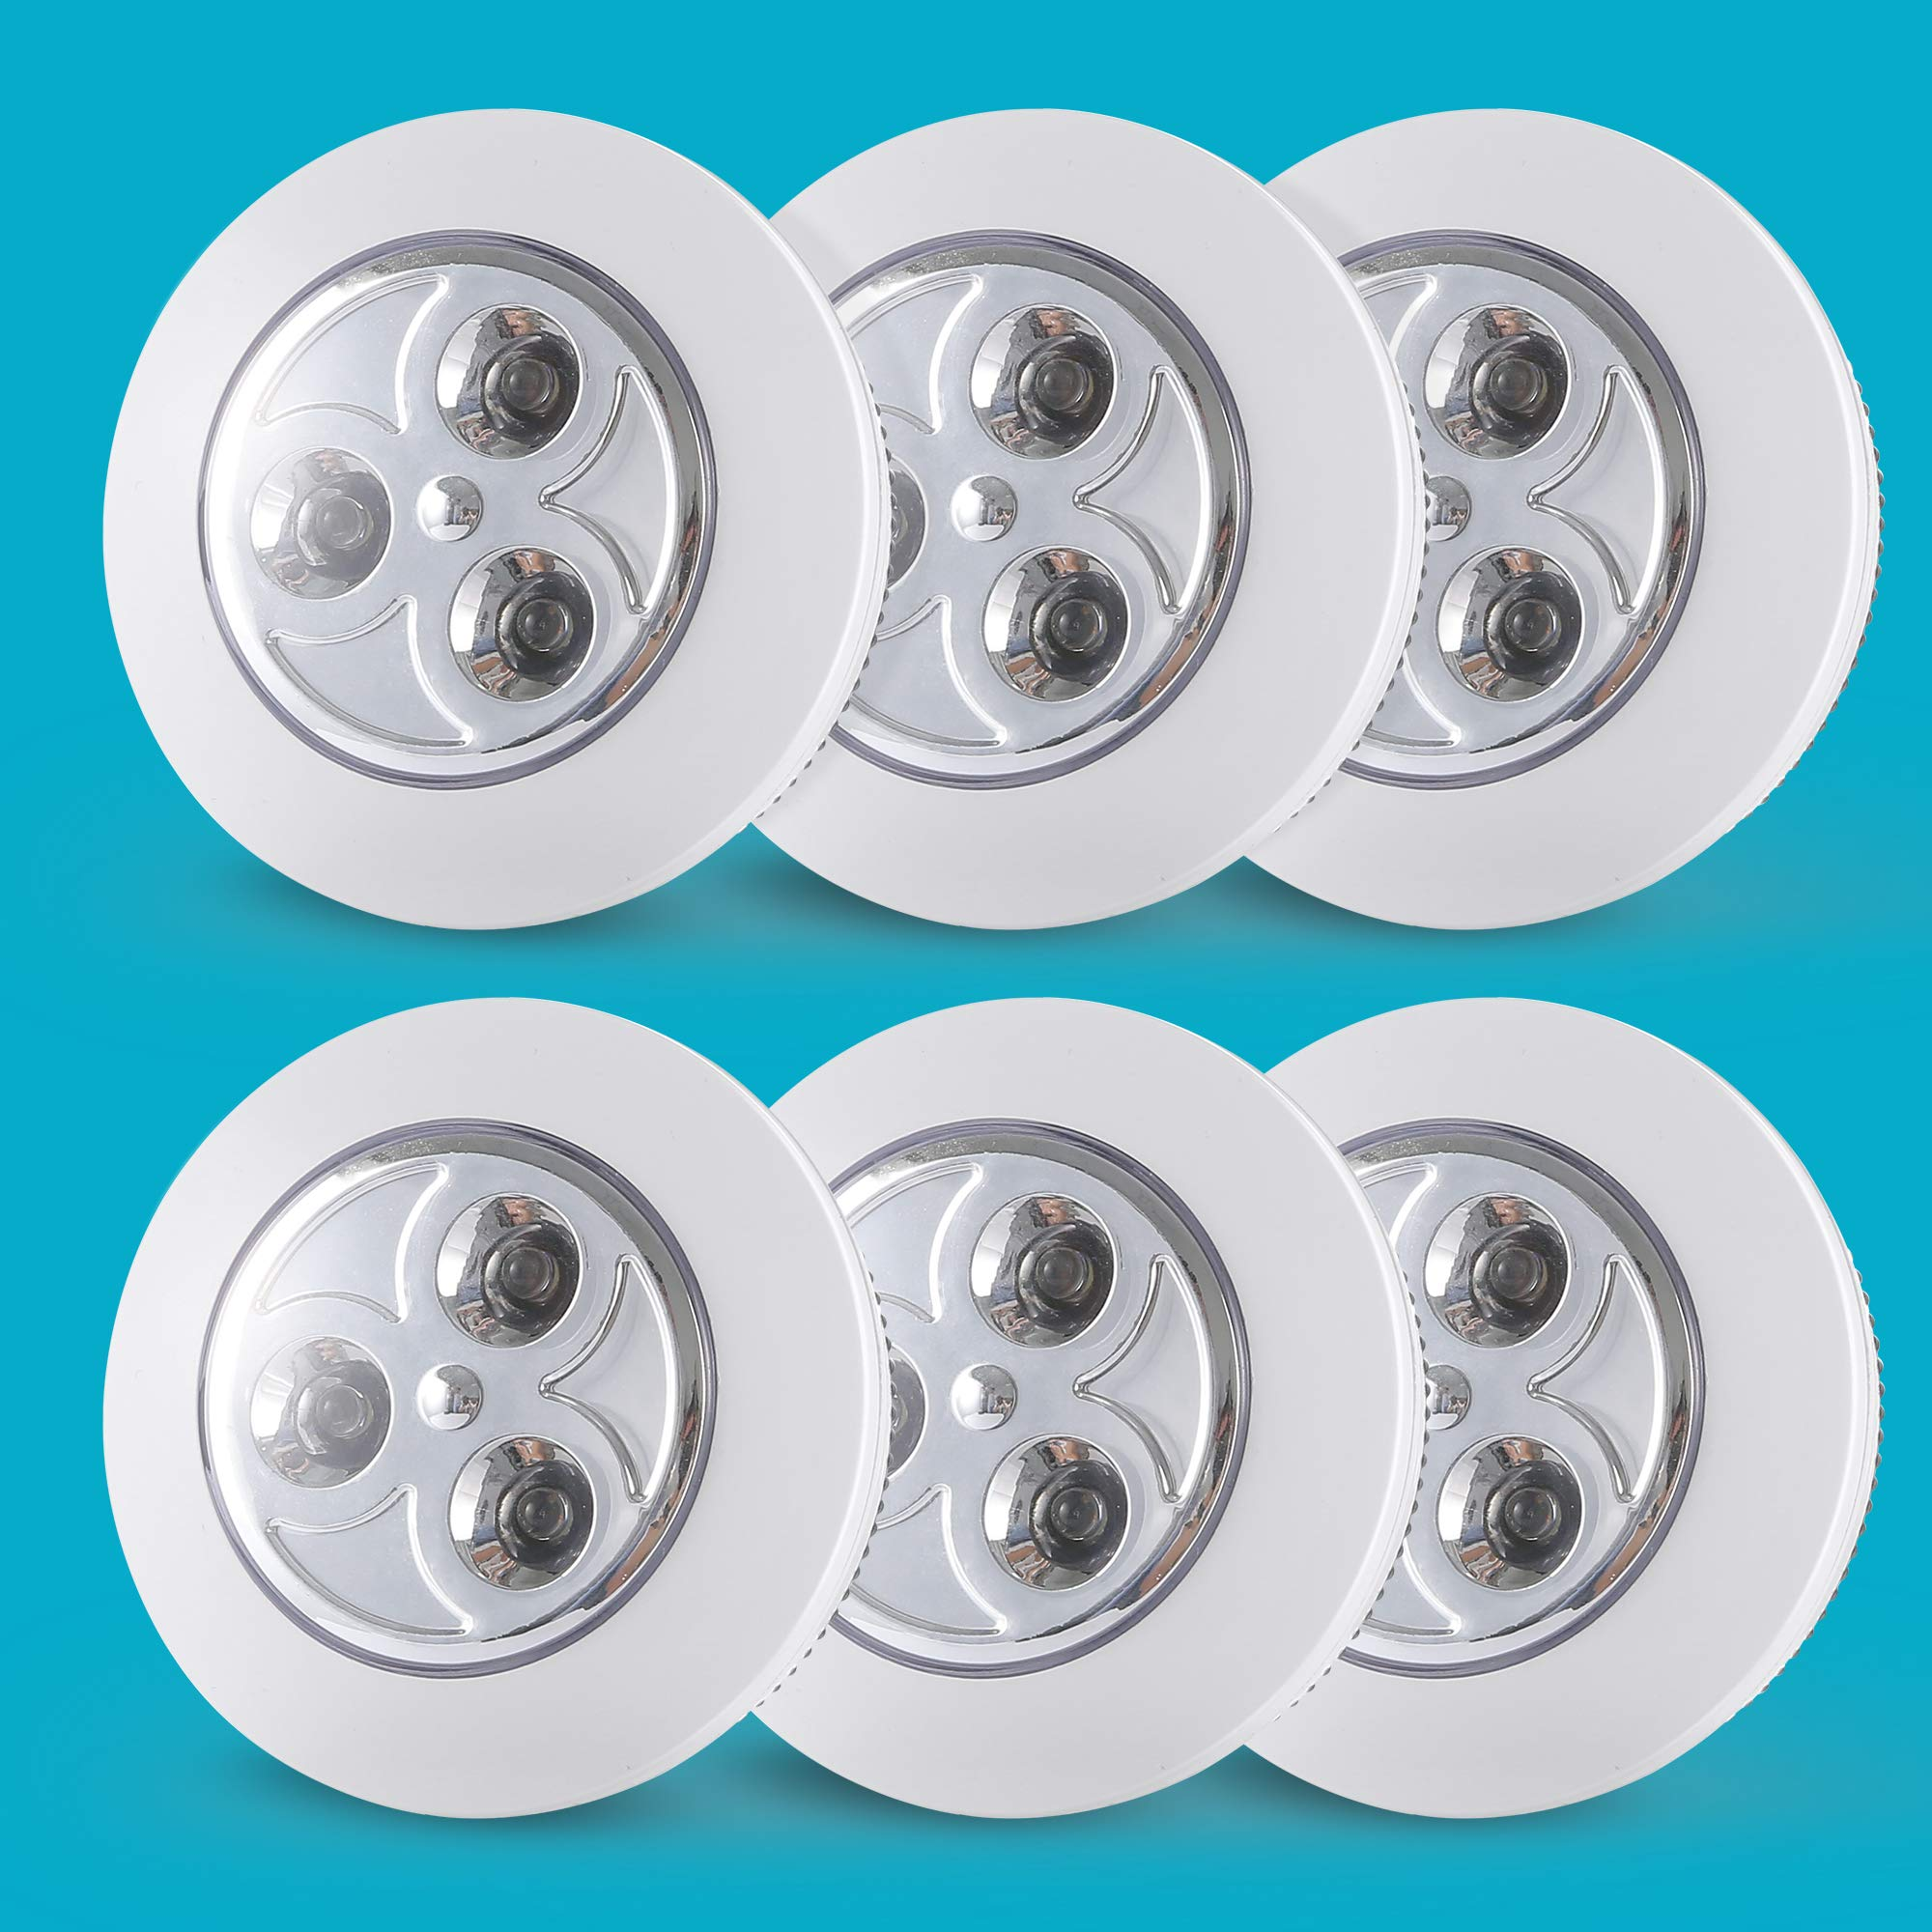 6-Pack Closet Push Light Battery Operated | Touch Lights| Led Lights for Closet| Tap Light| Push on Light, for Shoe Cabinet, Hallway, Cabinet, Wardrobe, Kitchen Locker(Not Batteries) by SOAIY